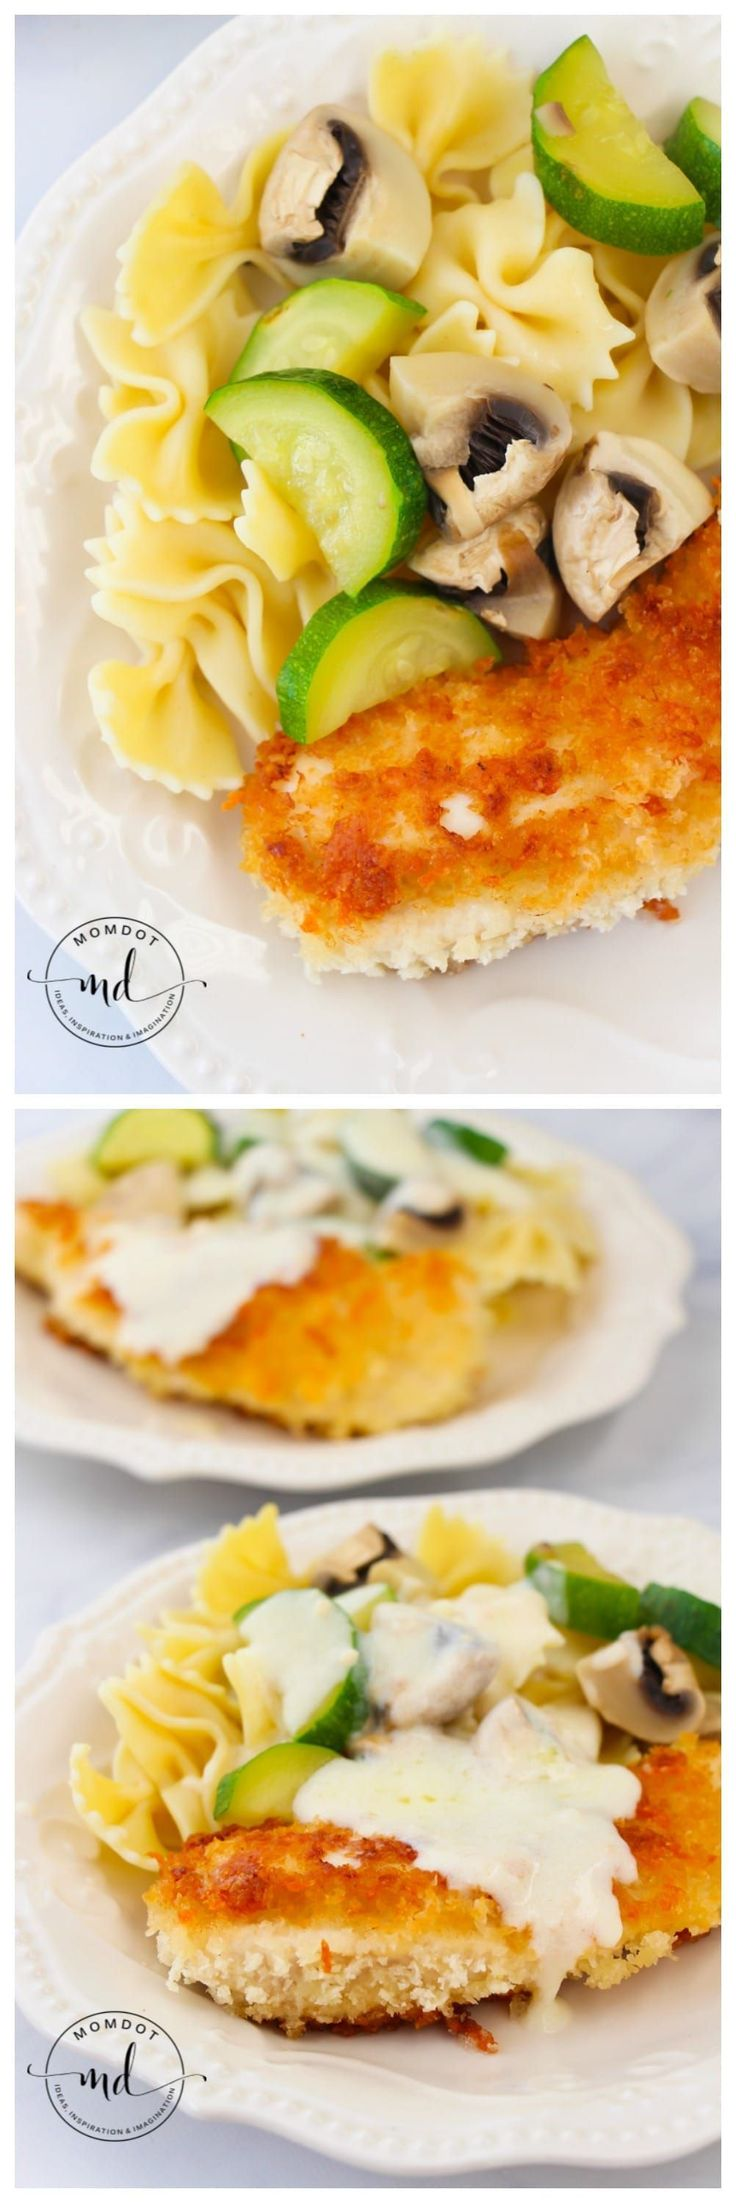 Copycat Olive Garden Parmesan Crusted Chicken | Perfect Italian Recipe for Dinner Tonight #chickens  #chickendinner #copycatrecipes #RecipesForDinner